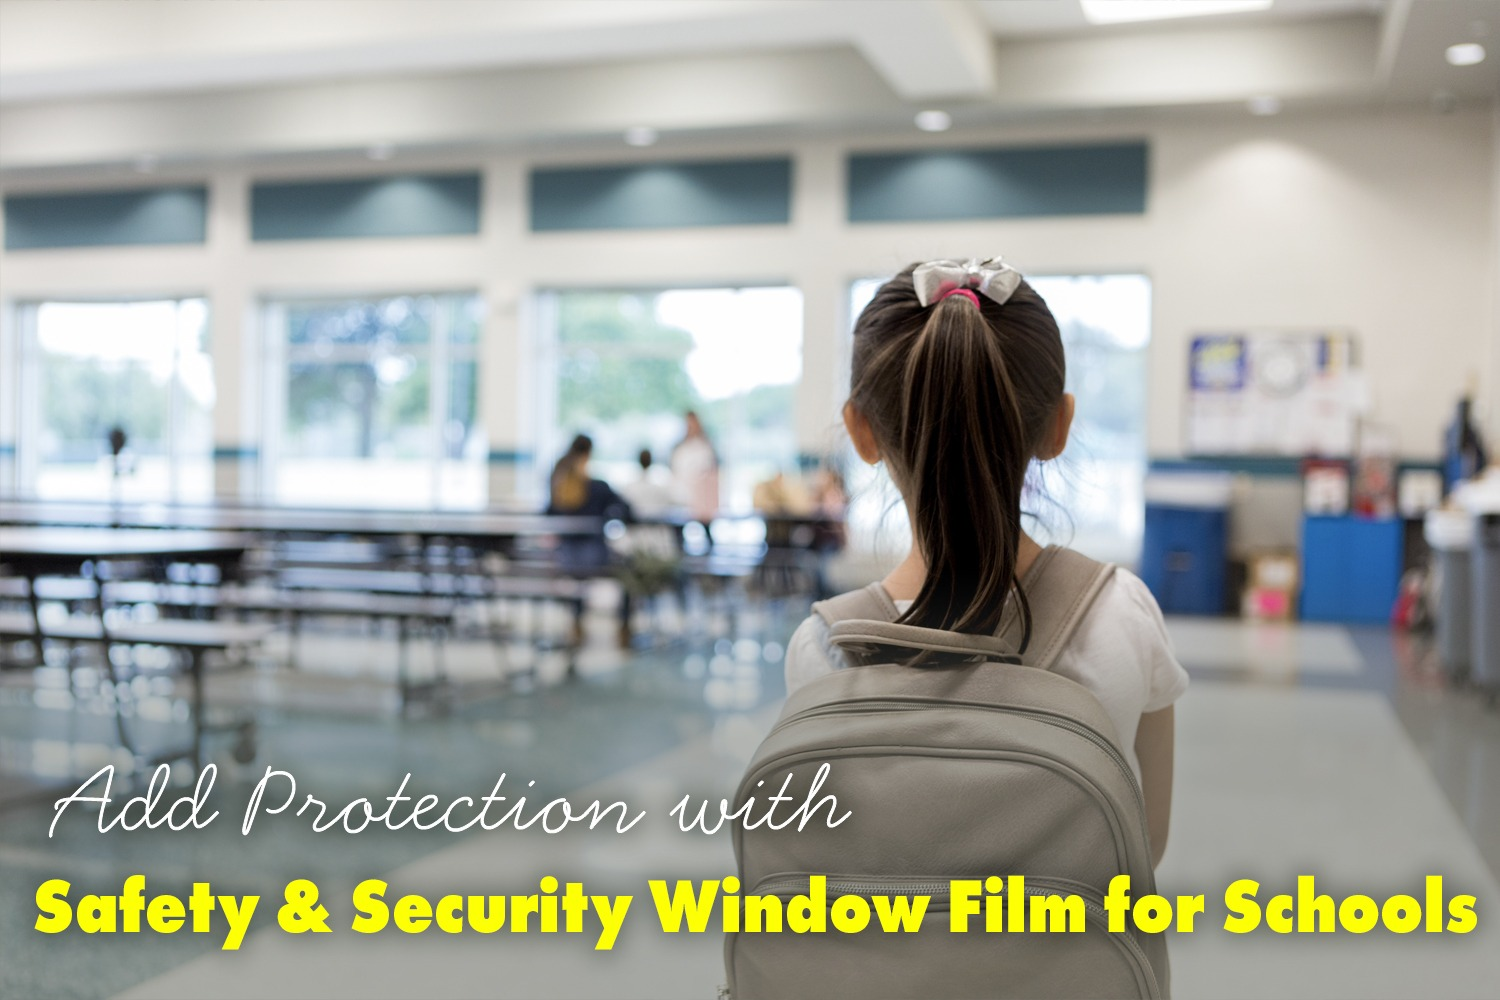 Safety & Security Window Film for schools